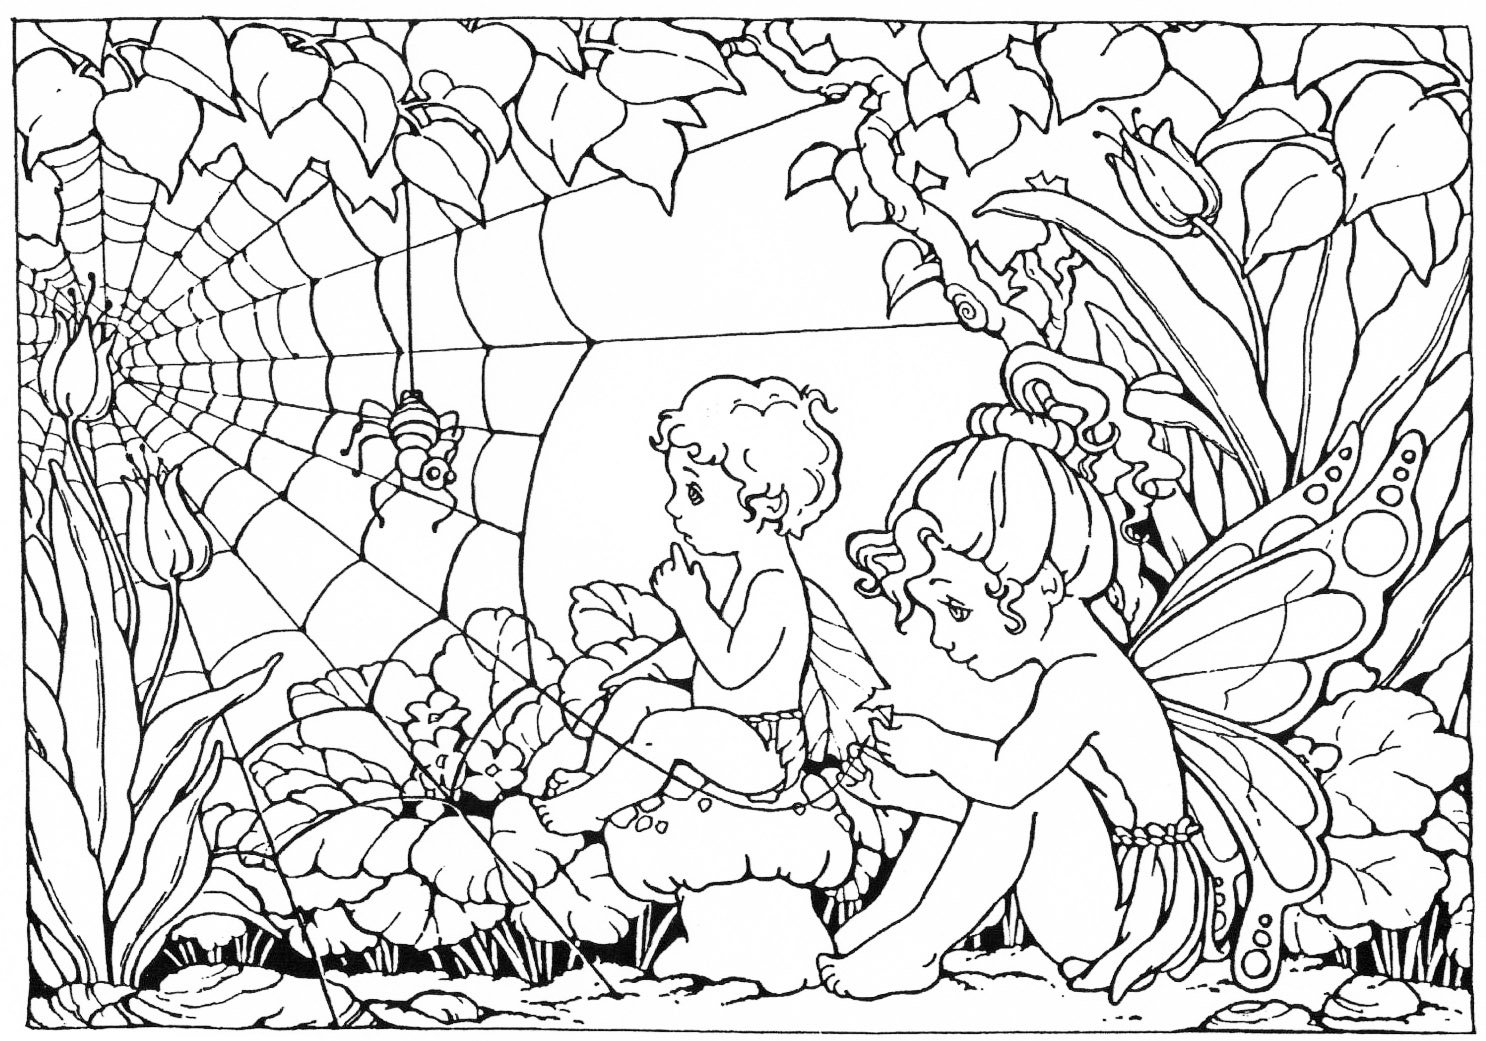 print and colour fairy colouring page - Coloring Book Pages For Adults 2